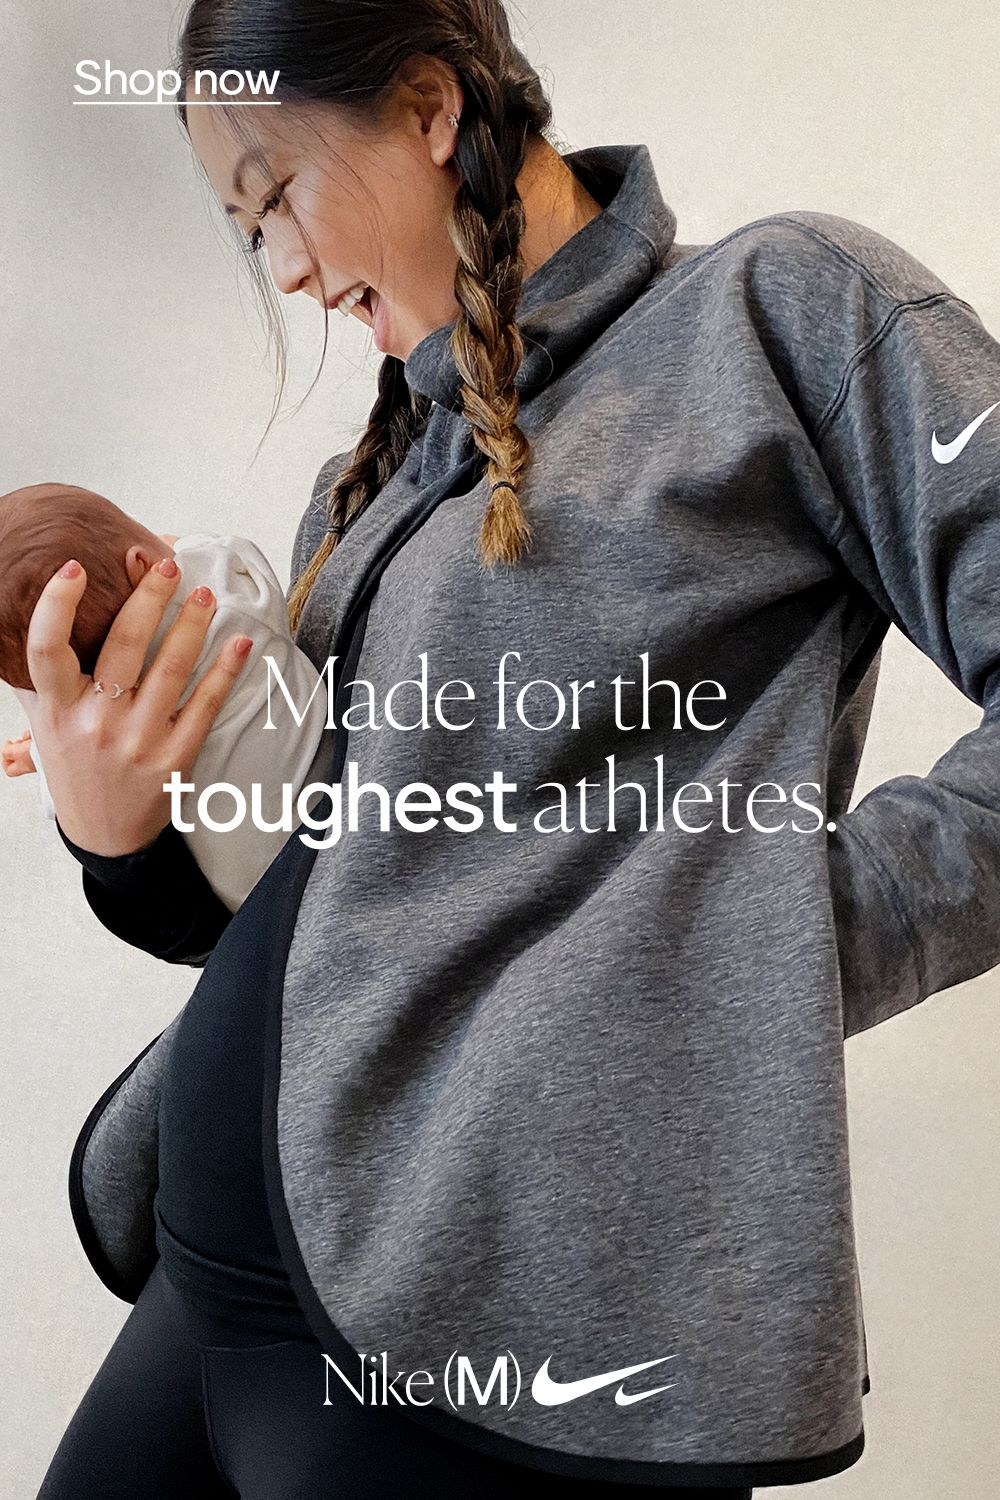 Nike (M) | Women pullover, Cute pajama sets, Maternity collection